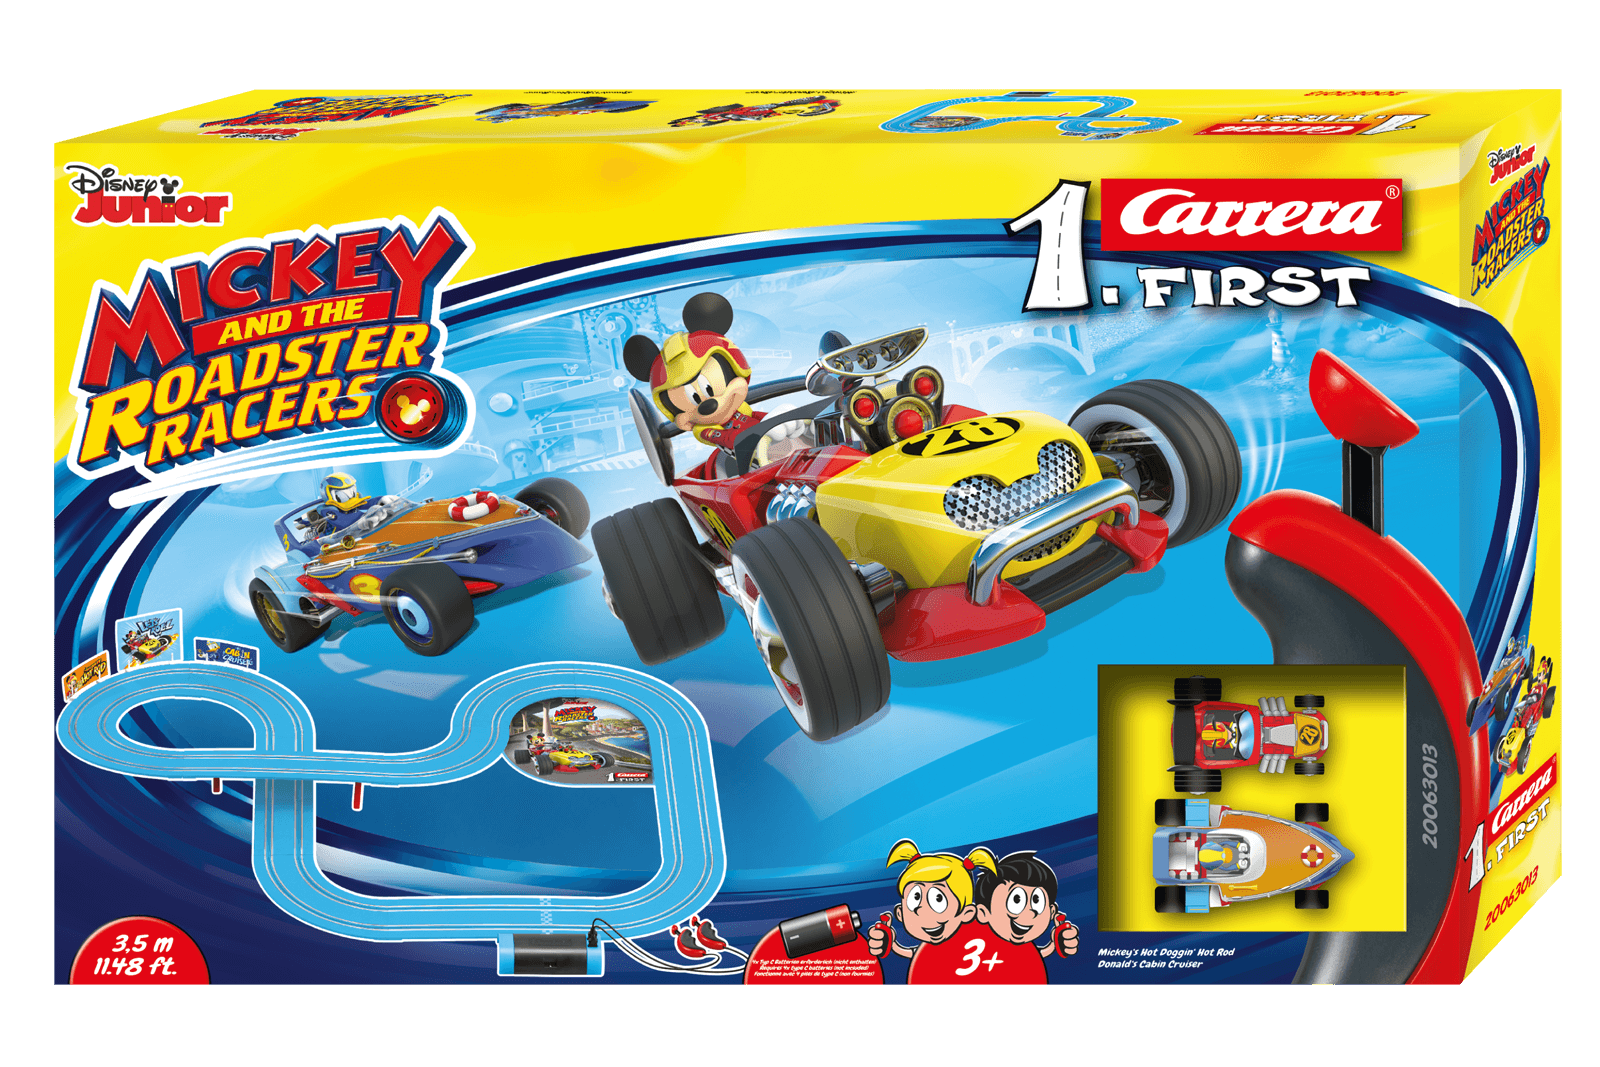 mickey and the roadster racers 20063013 carrera. Black Bedroom Furniture Sets. Home Design Ideas